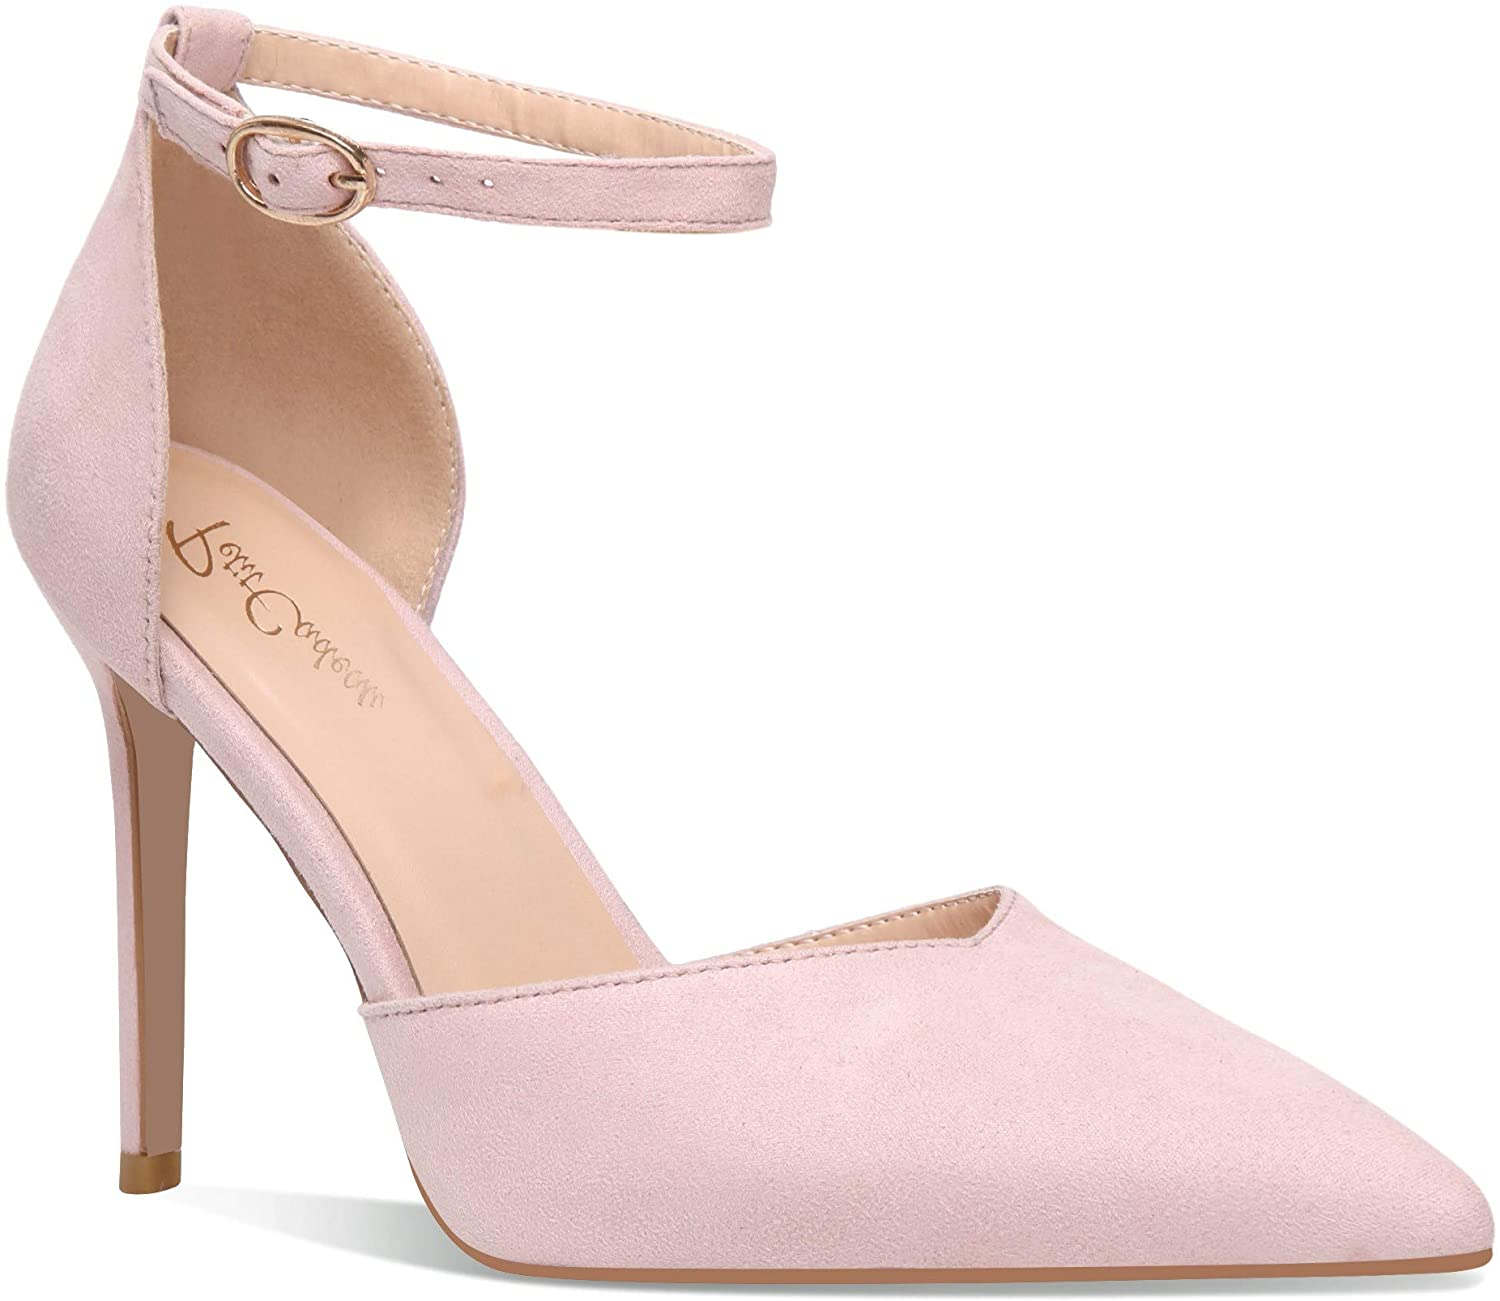 Carolyn - Women's Elegant, Sexy and Feminine Pointed Toe D'Orsay Pumps with 4